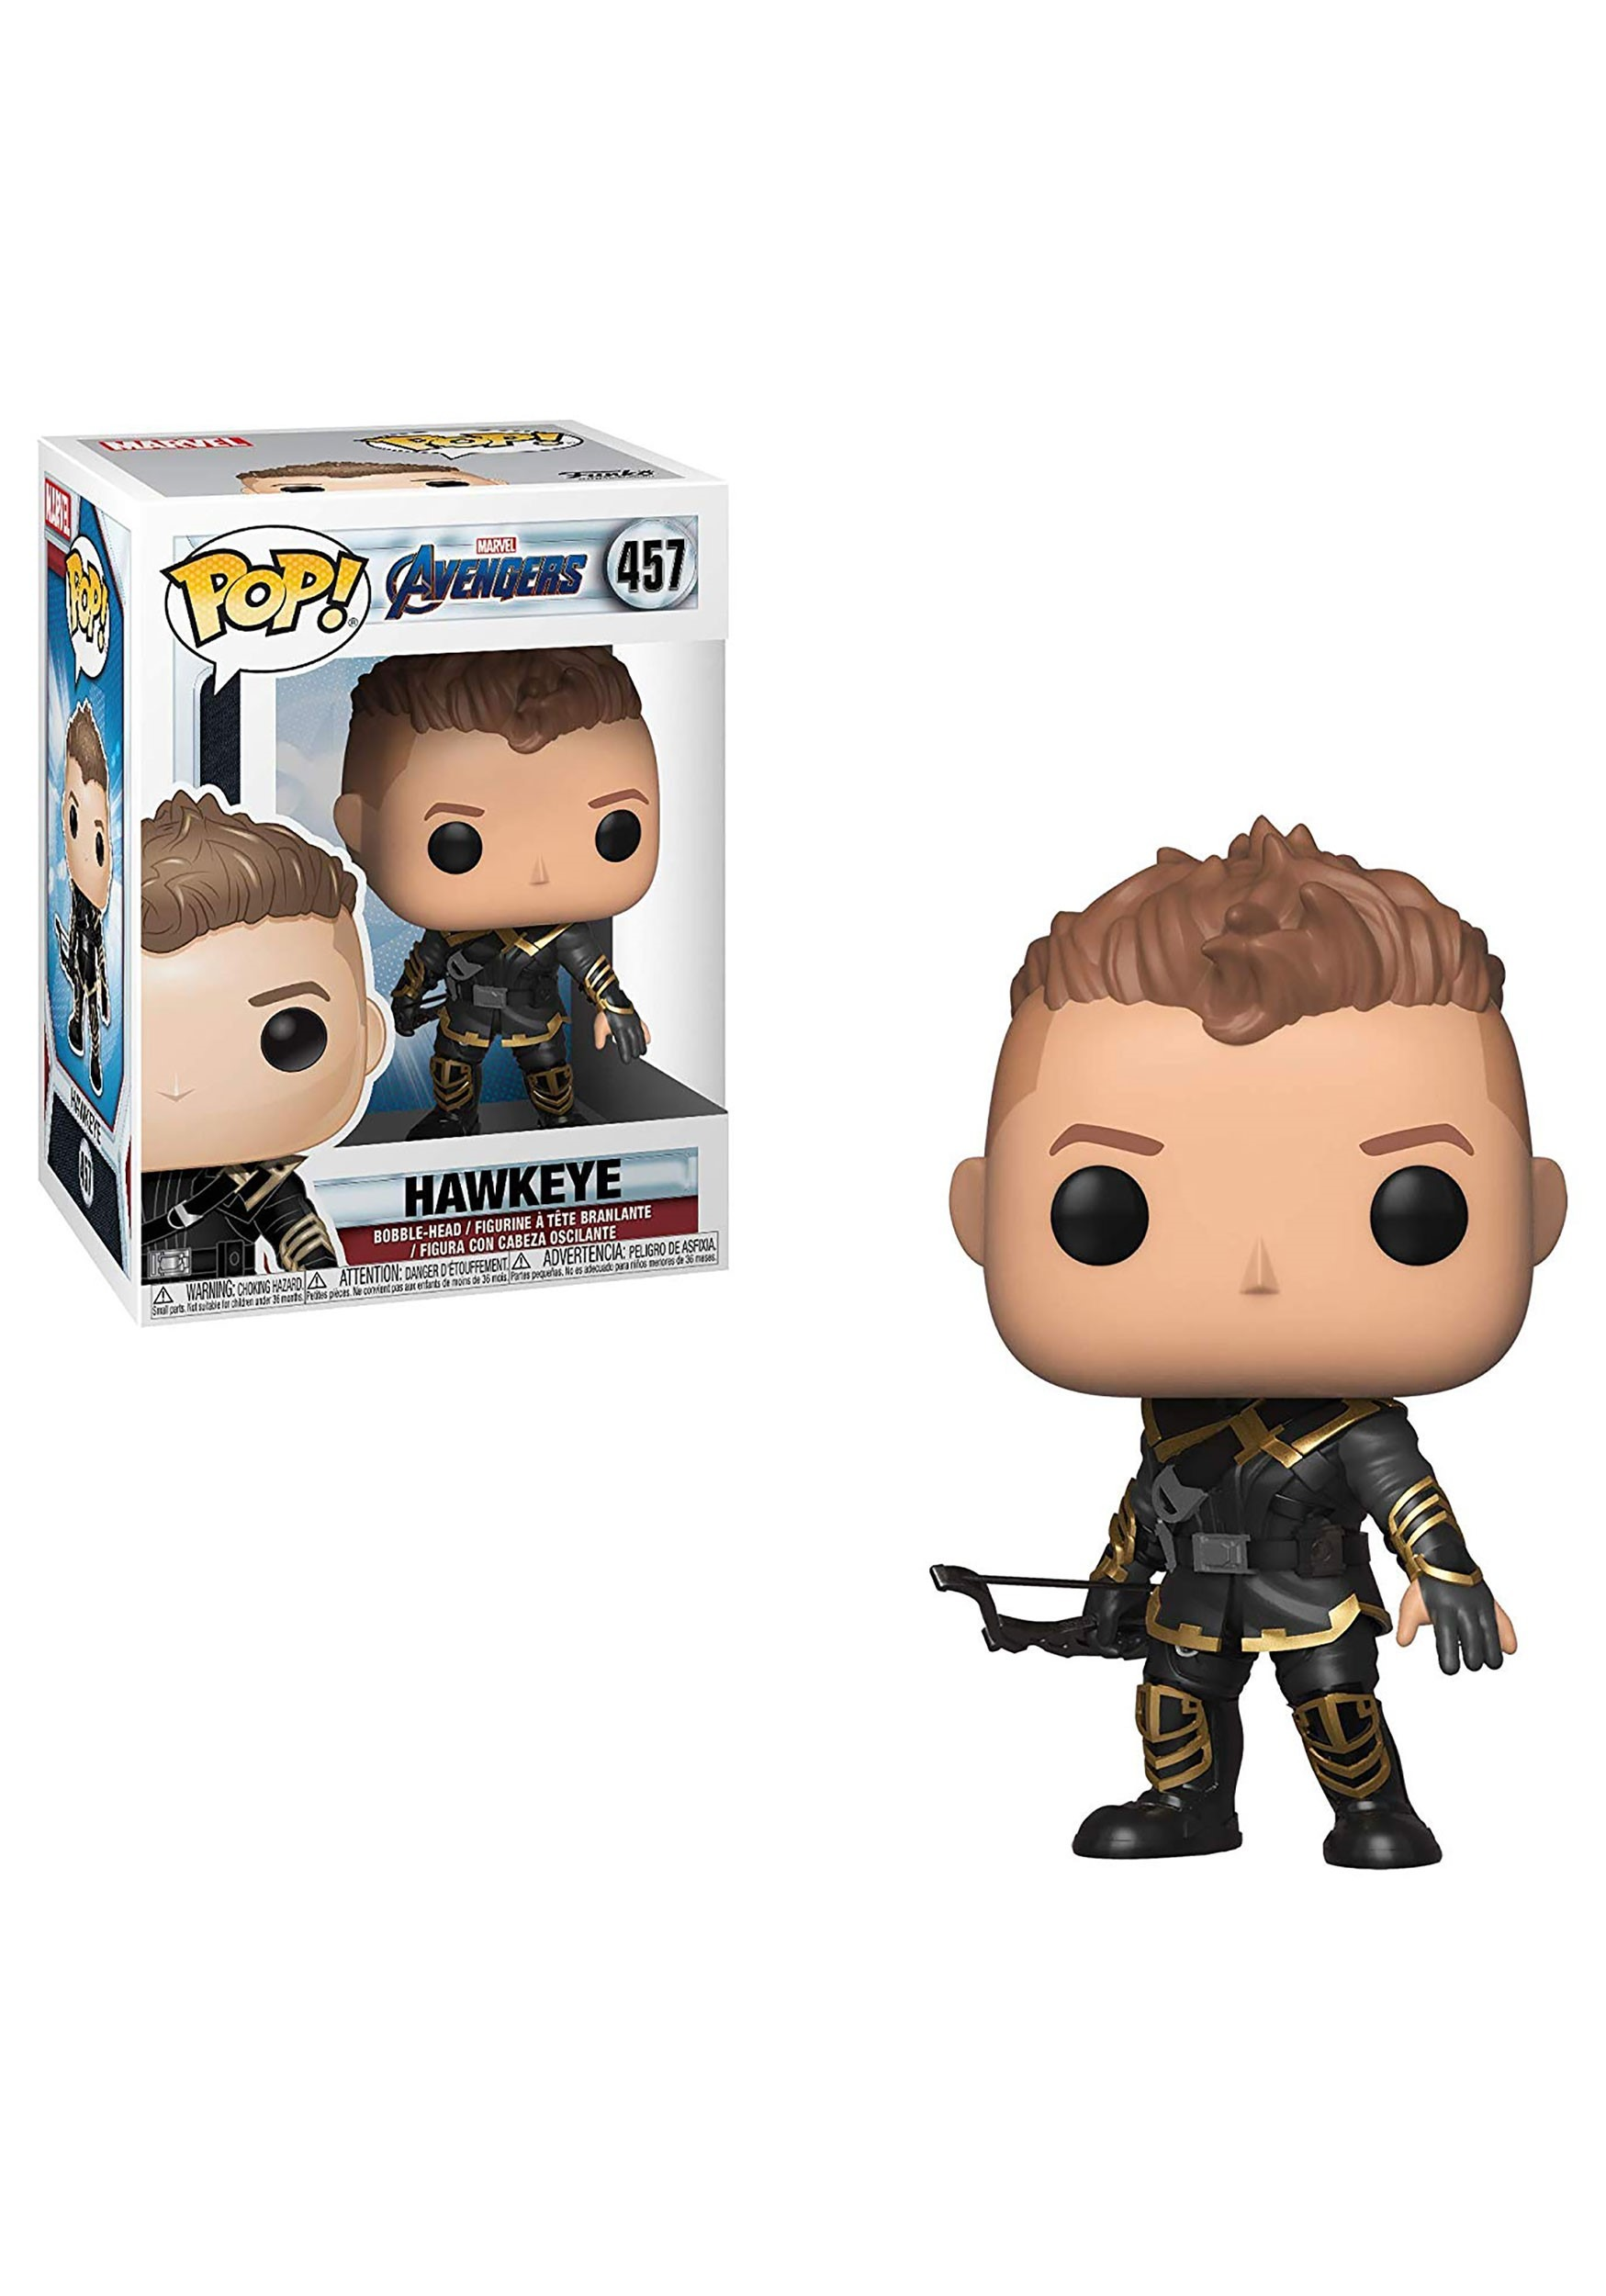 3968c5771 POP! Marvel: Avengers: Endgame- Hawkeye Bobblehead Figure